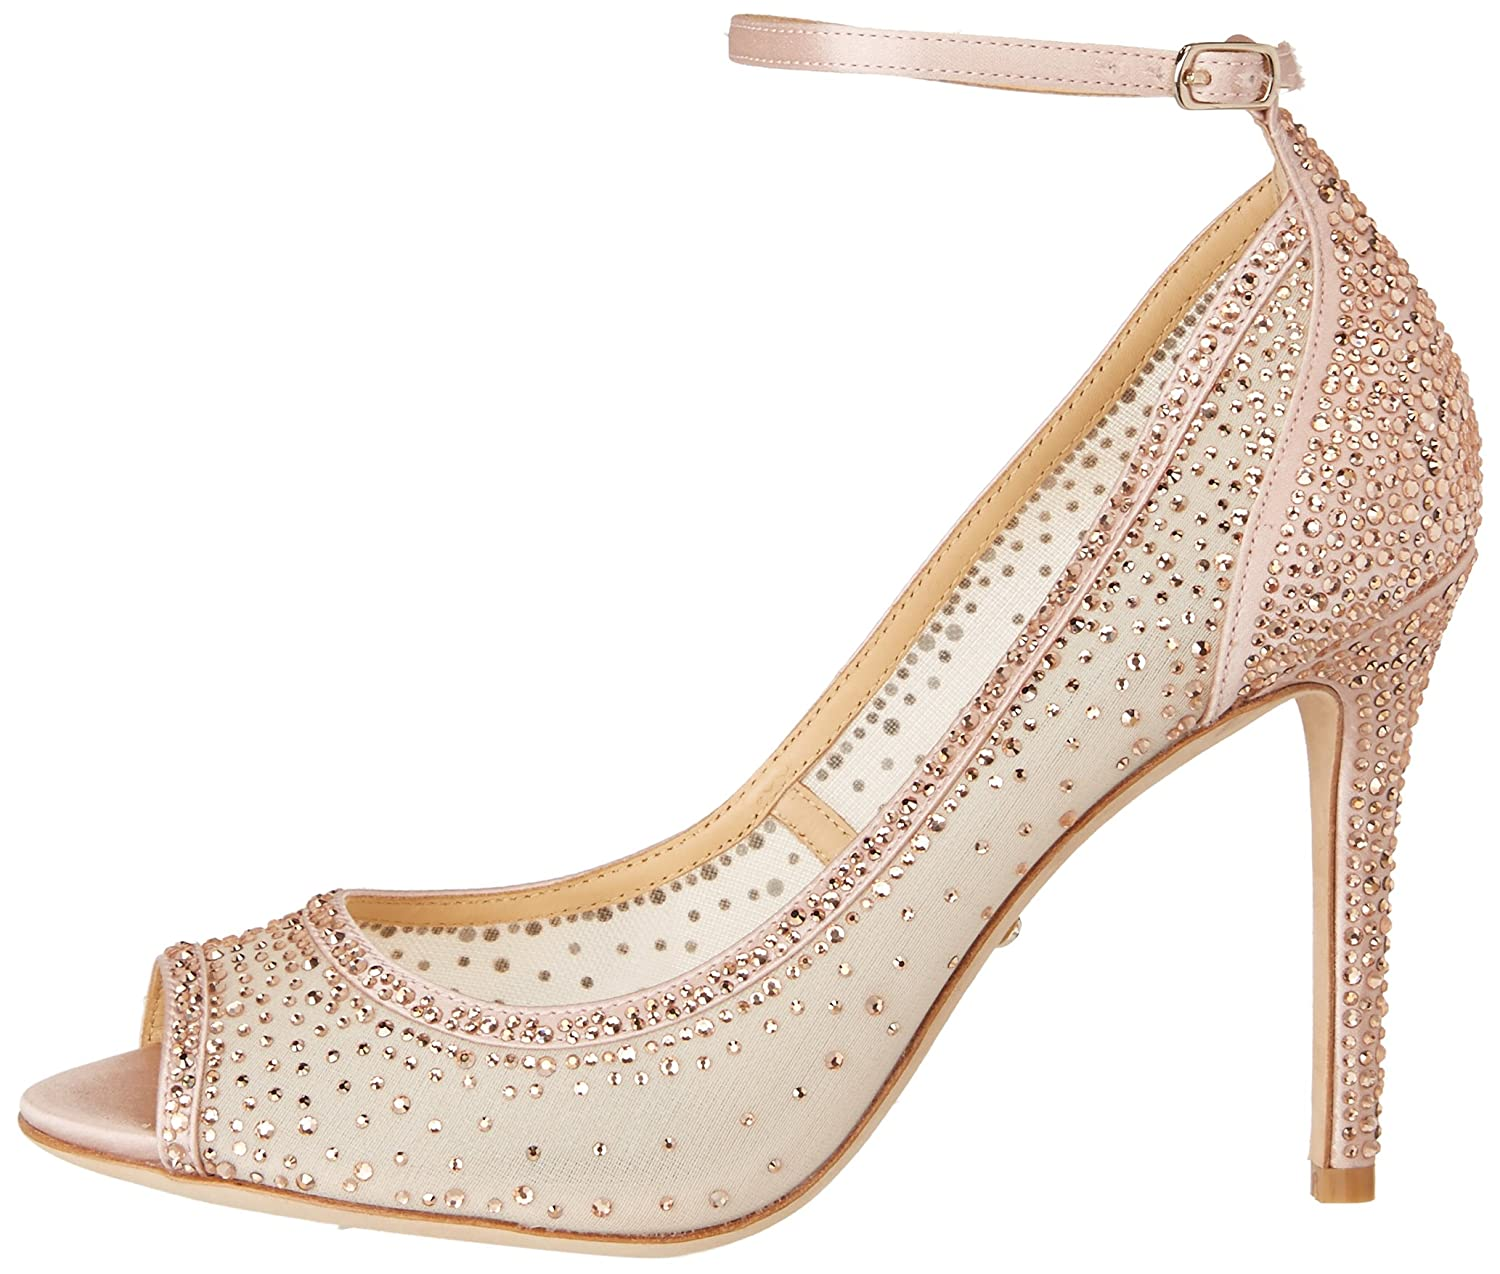 Badgley Mischka Women's Weylin Pump US|Blush B073CYG41X 6.5 B(M) US|Blush Pump 7c769c